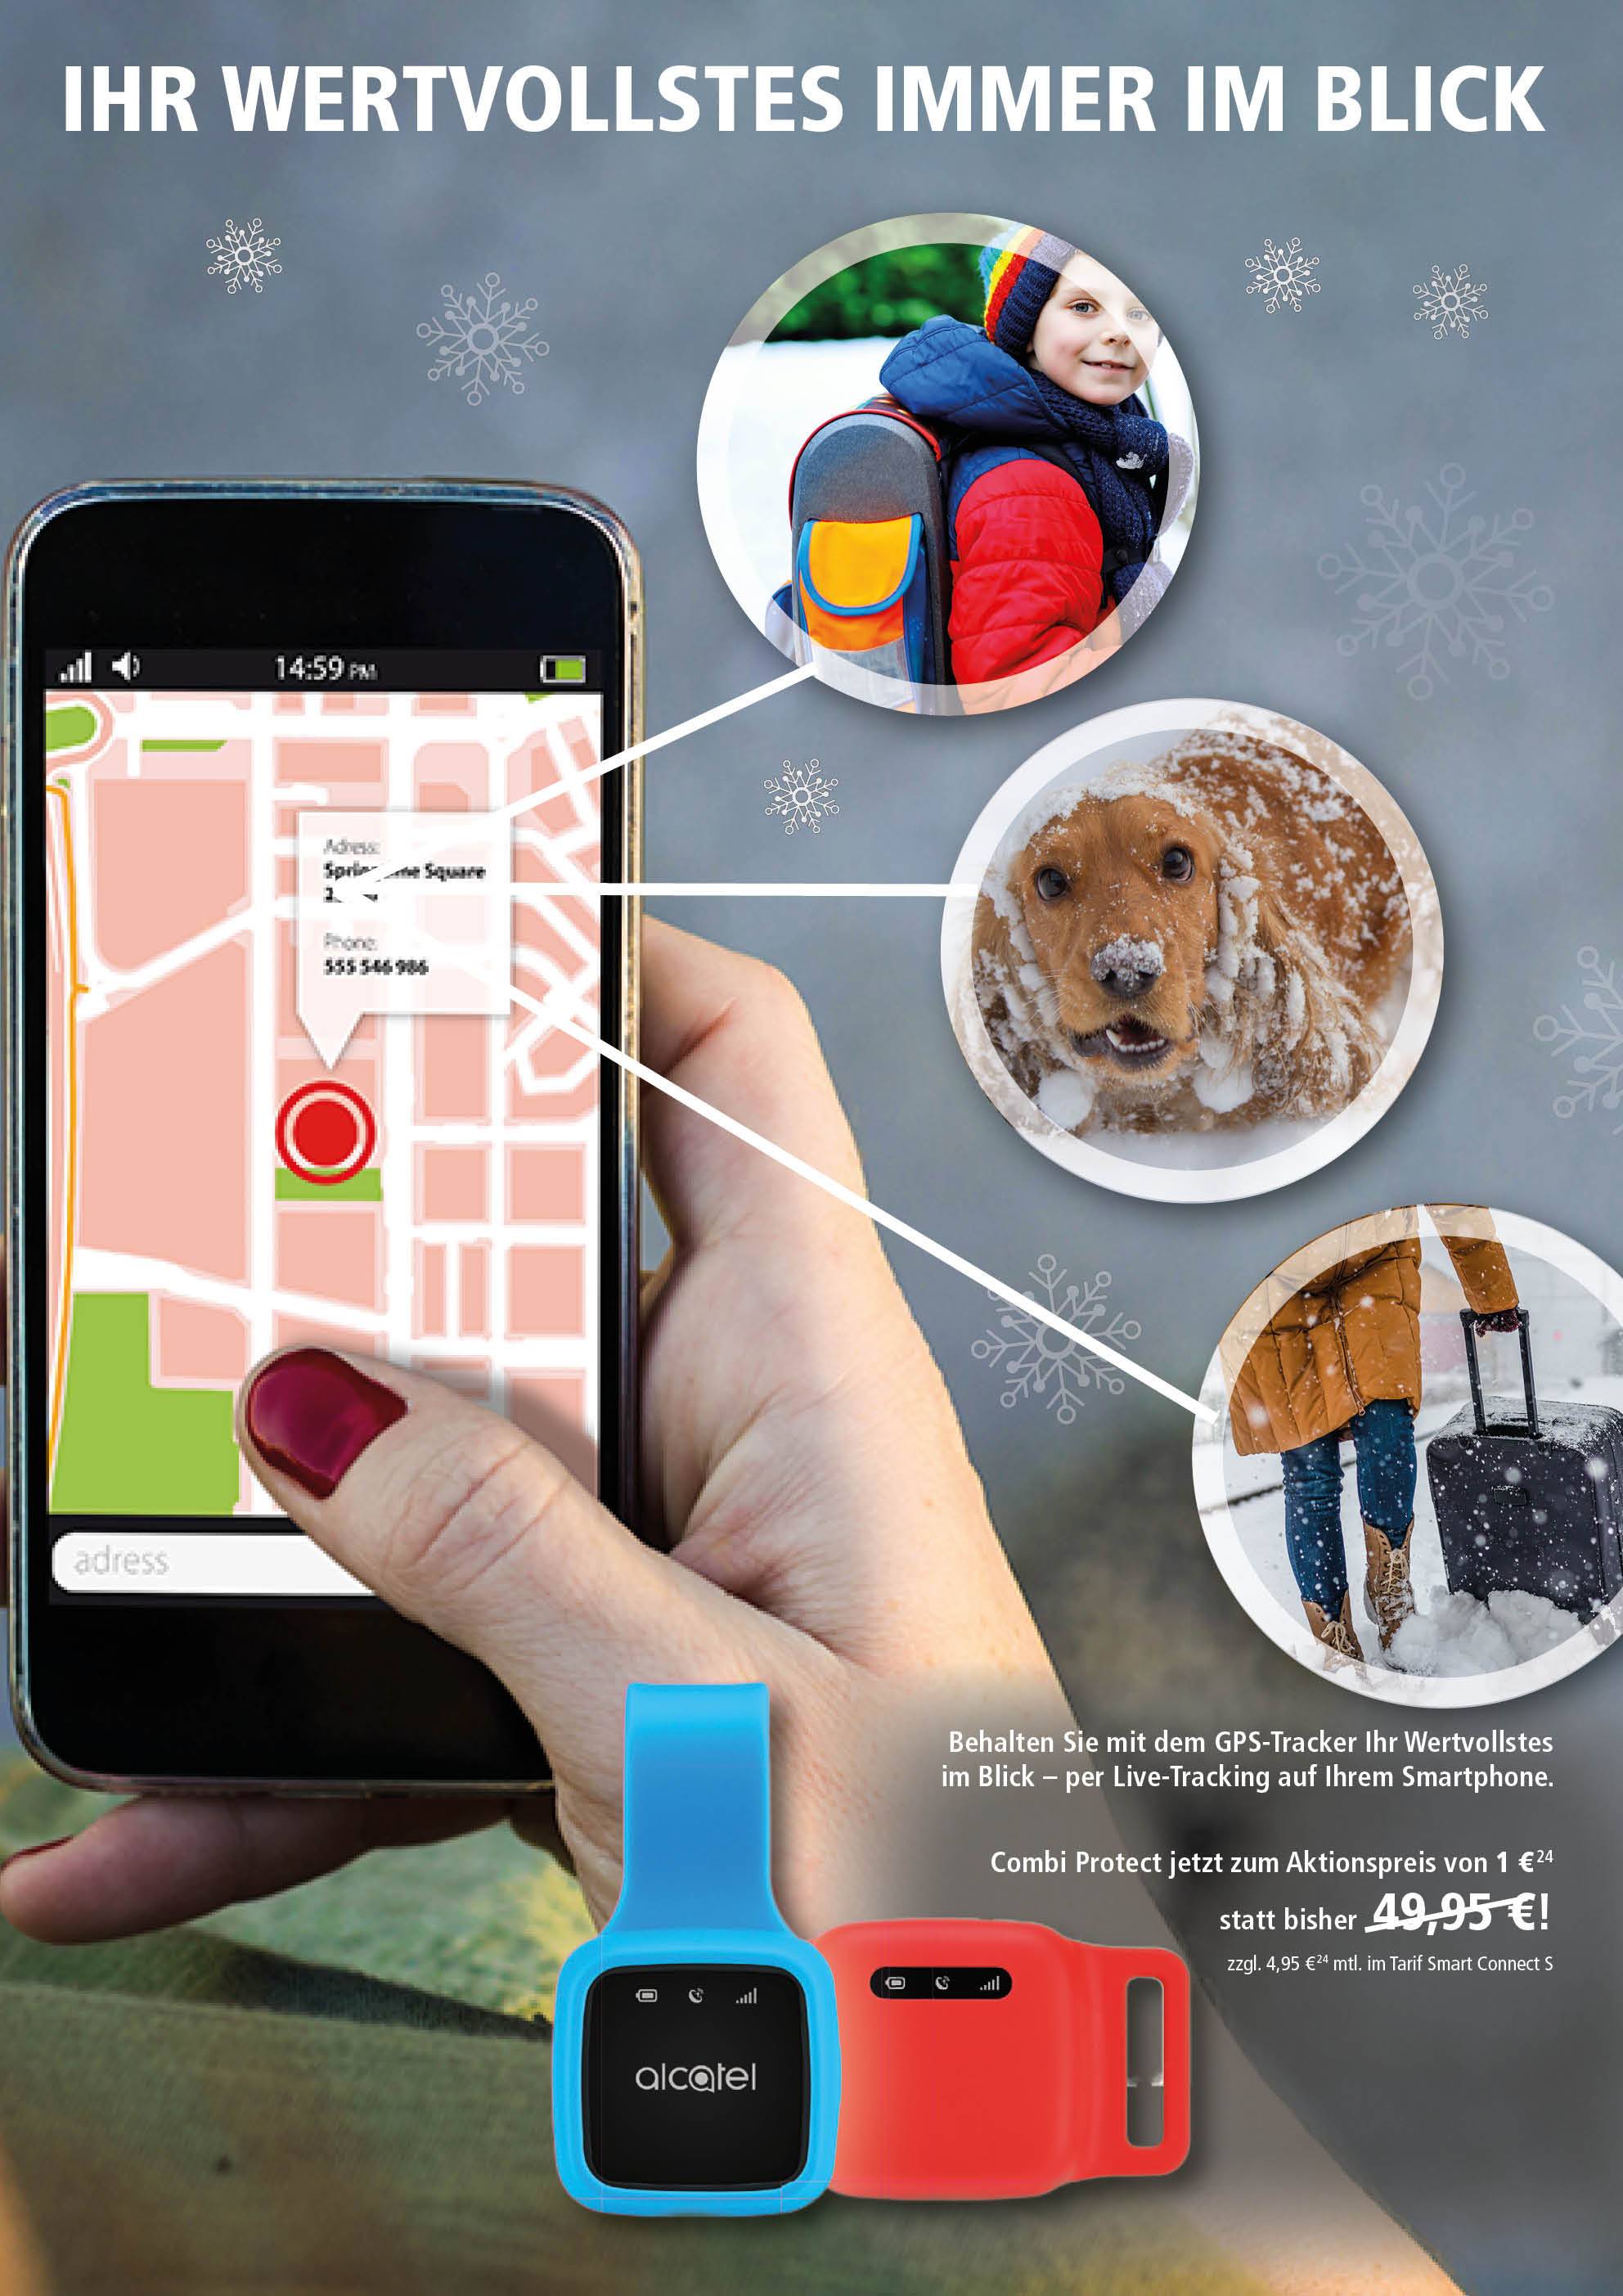 gps tracker combi protect